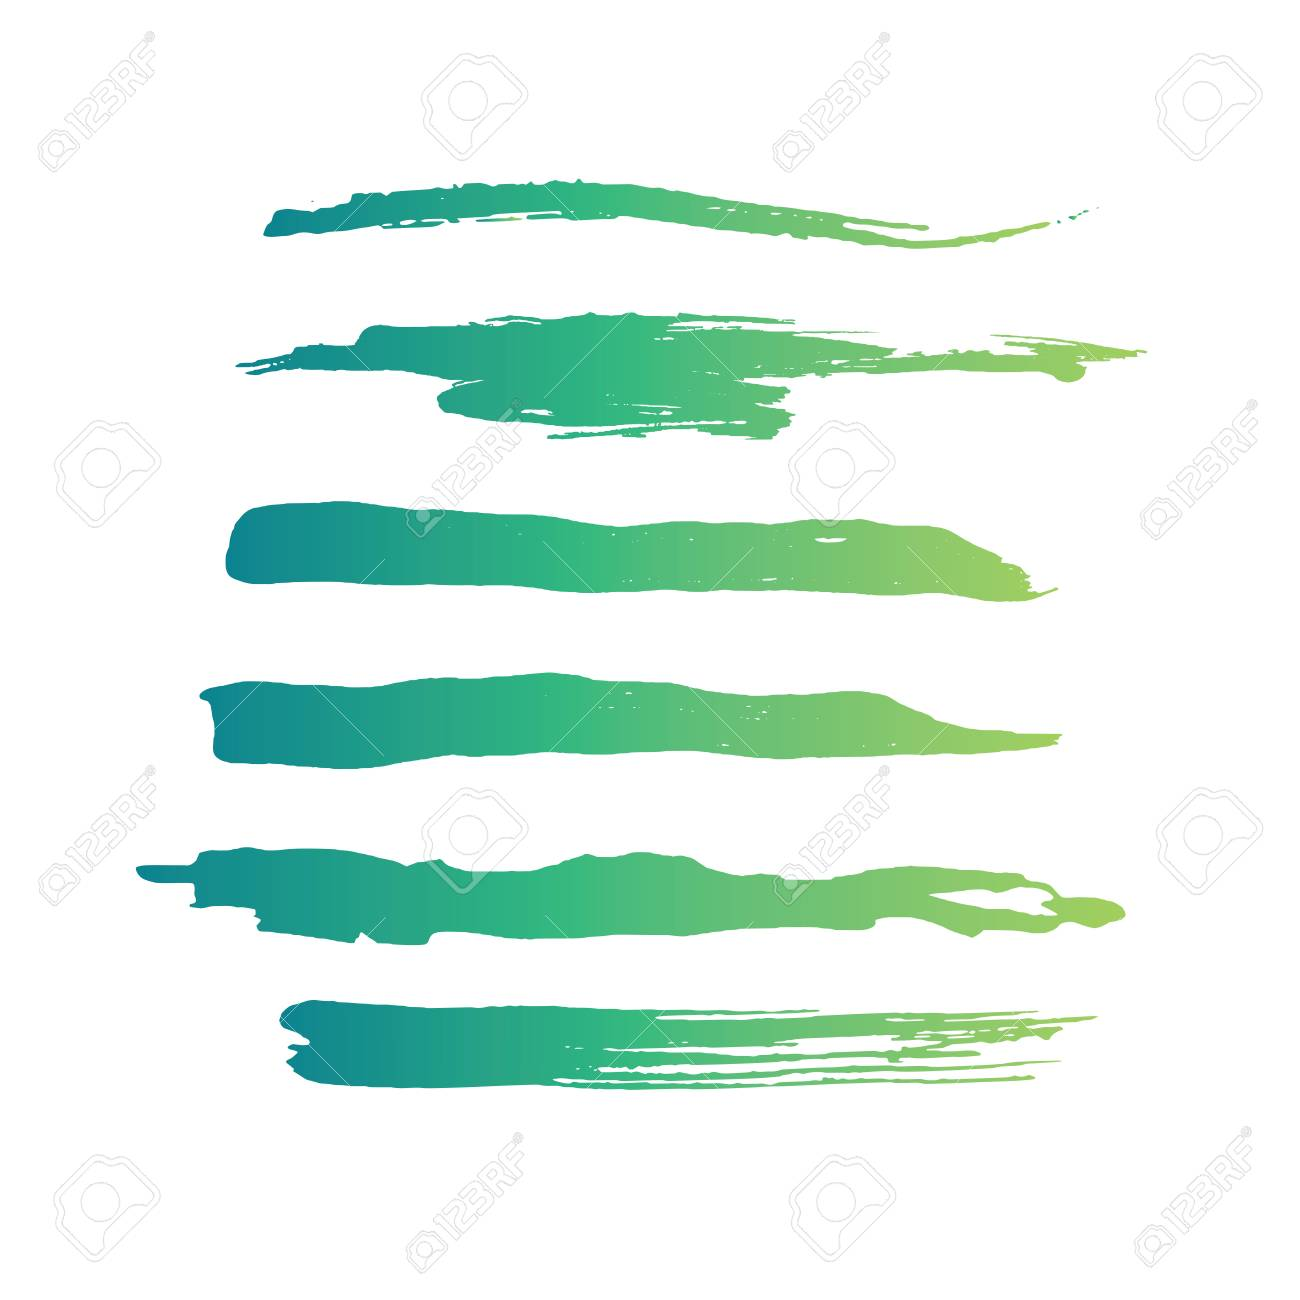 Green abstract grunge curly brushes  Spring digital collection